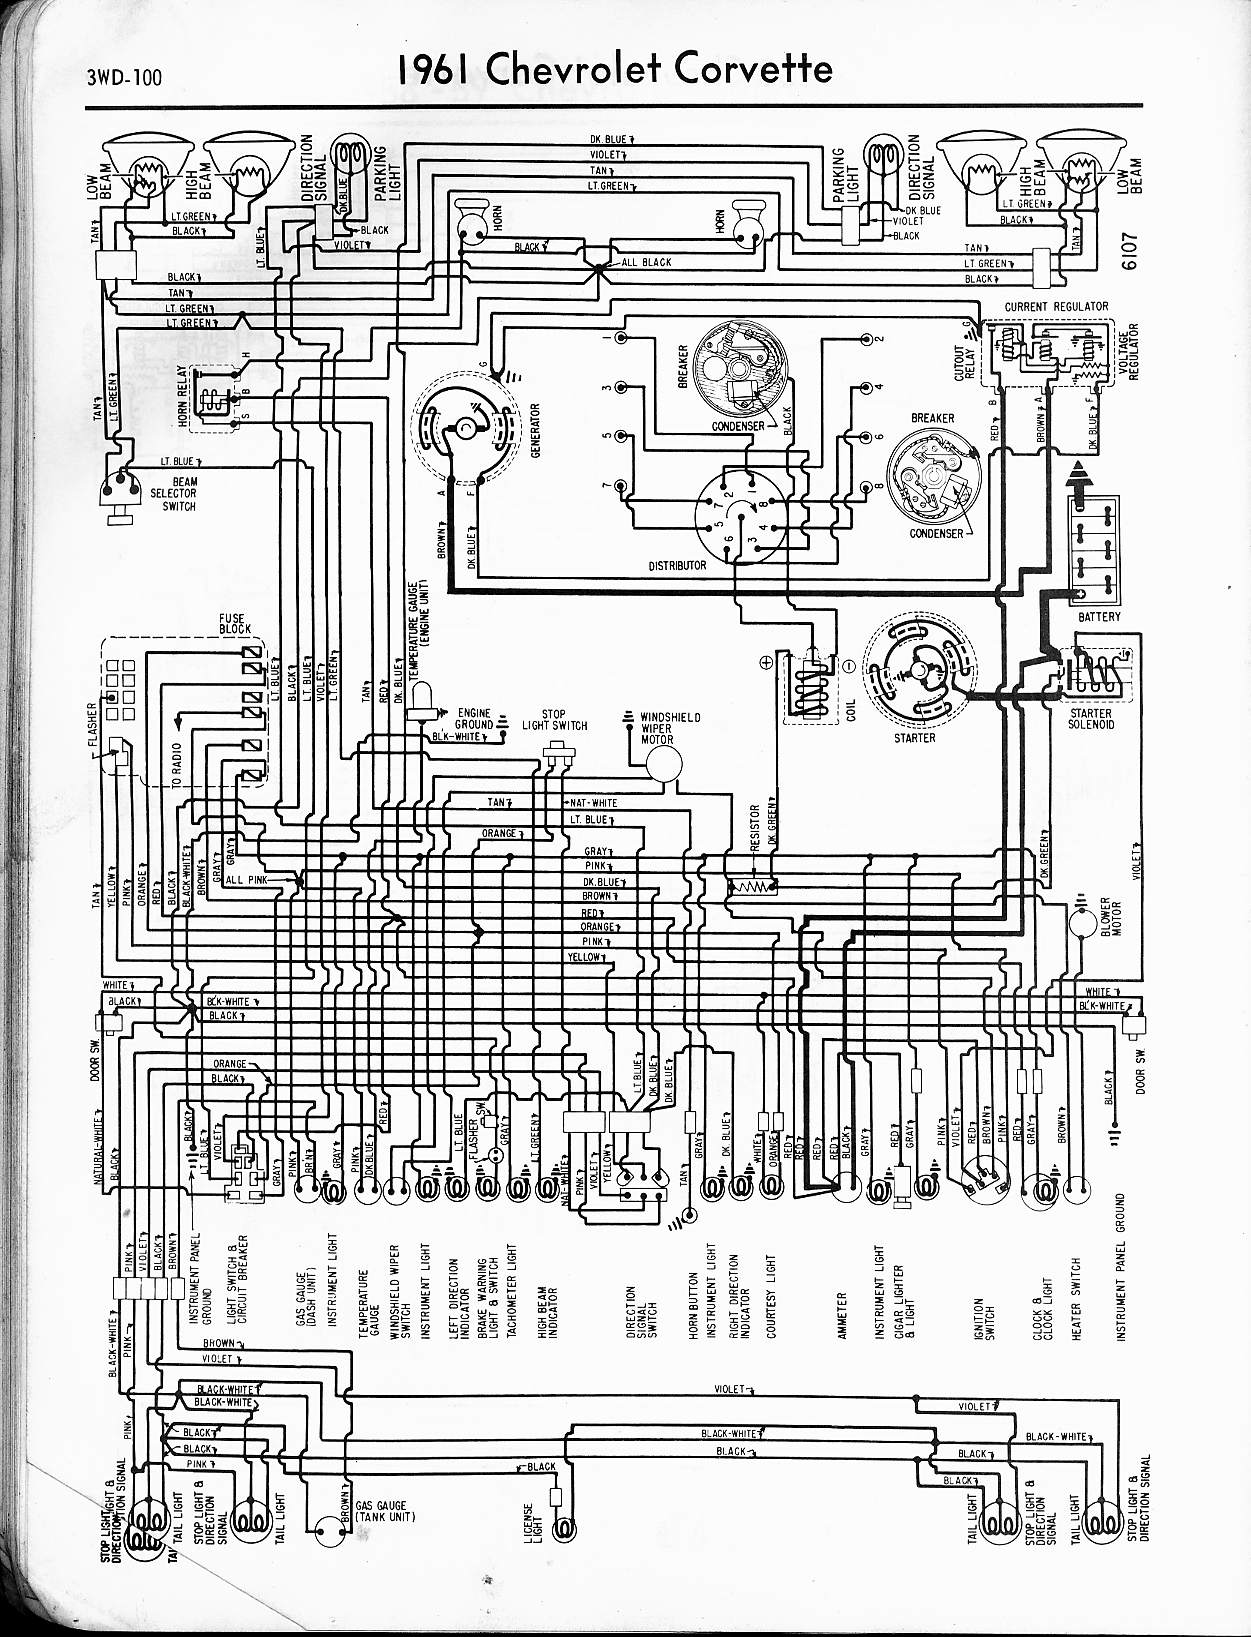 MWireChev61_3WD 100 57 65 chevy wiring diagrams 1962 impala wiring diagram at virtualis.co